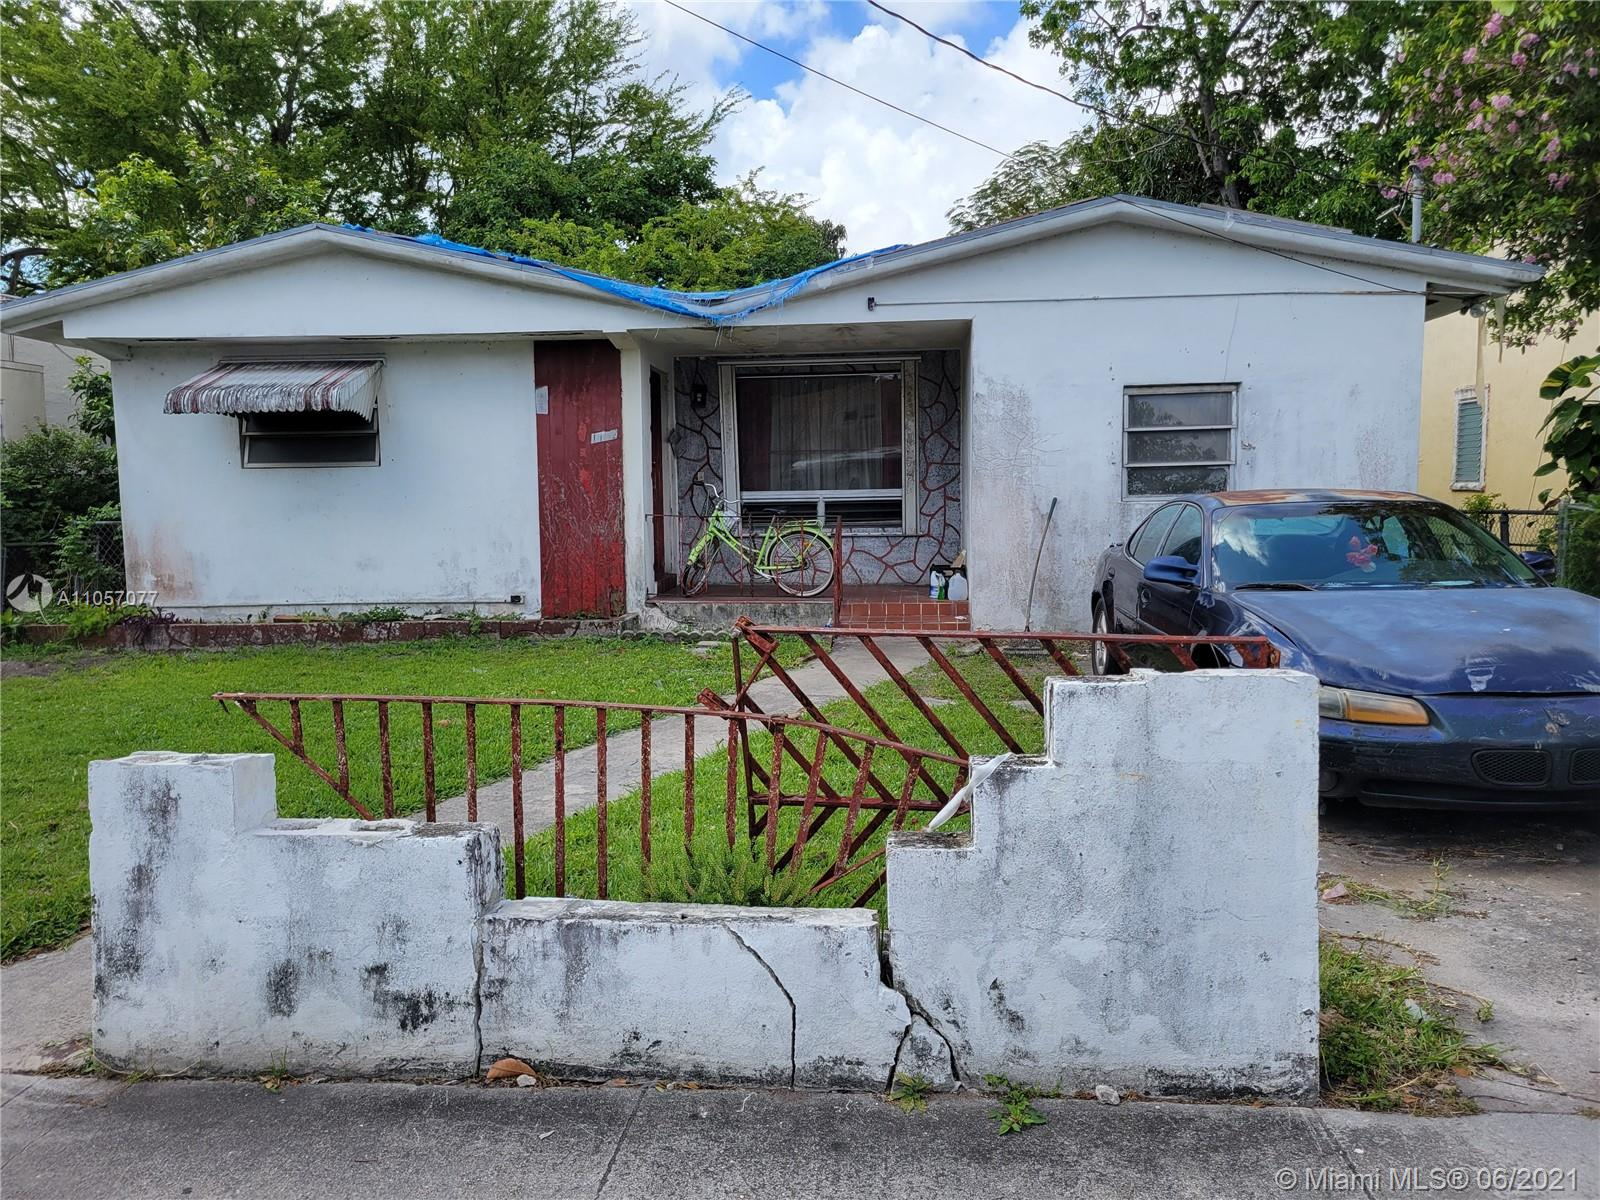 Attention Investors!! This Handyman Special is for you! Located in an Opportunity Zone for investors tax incentives. Located between I-95 and Miami International Airport. Please do not disturb occupants.